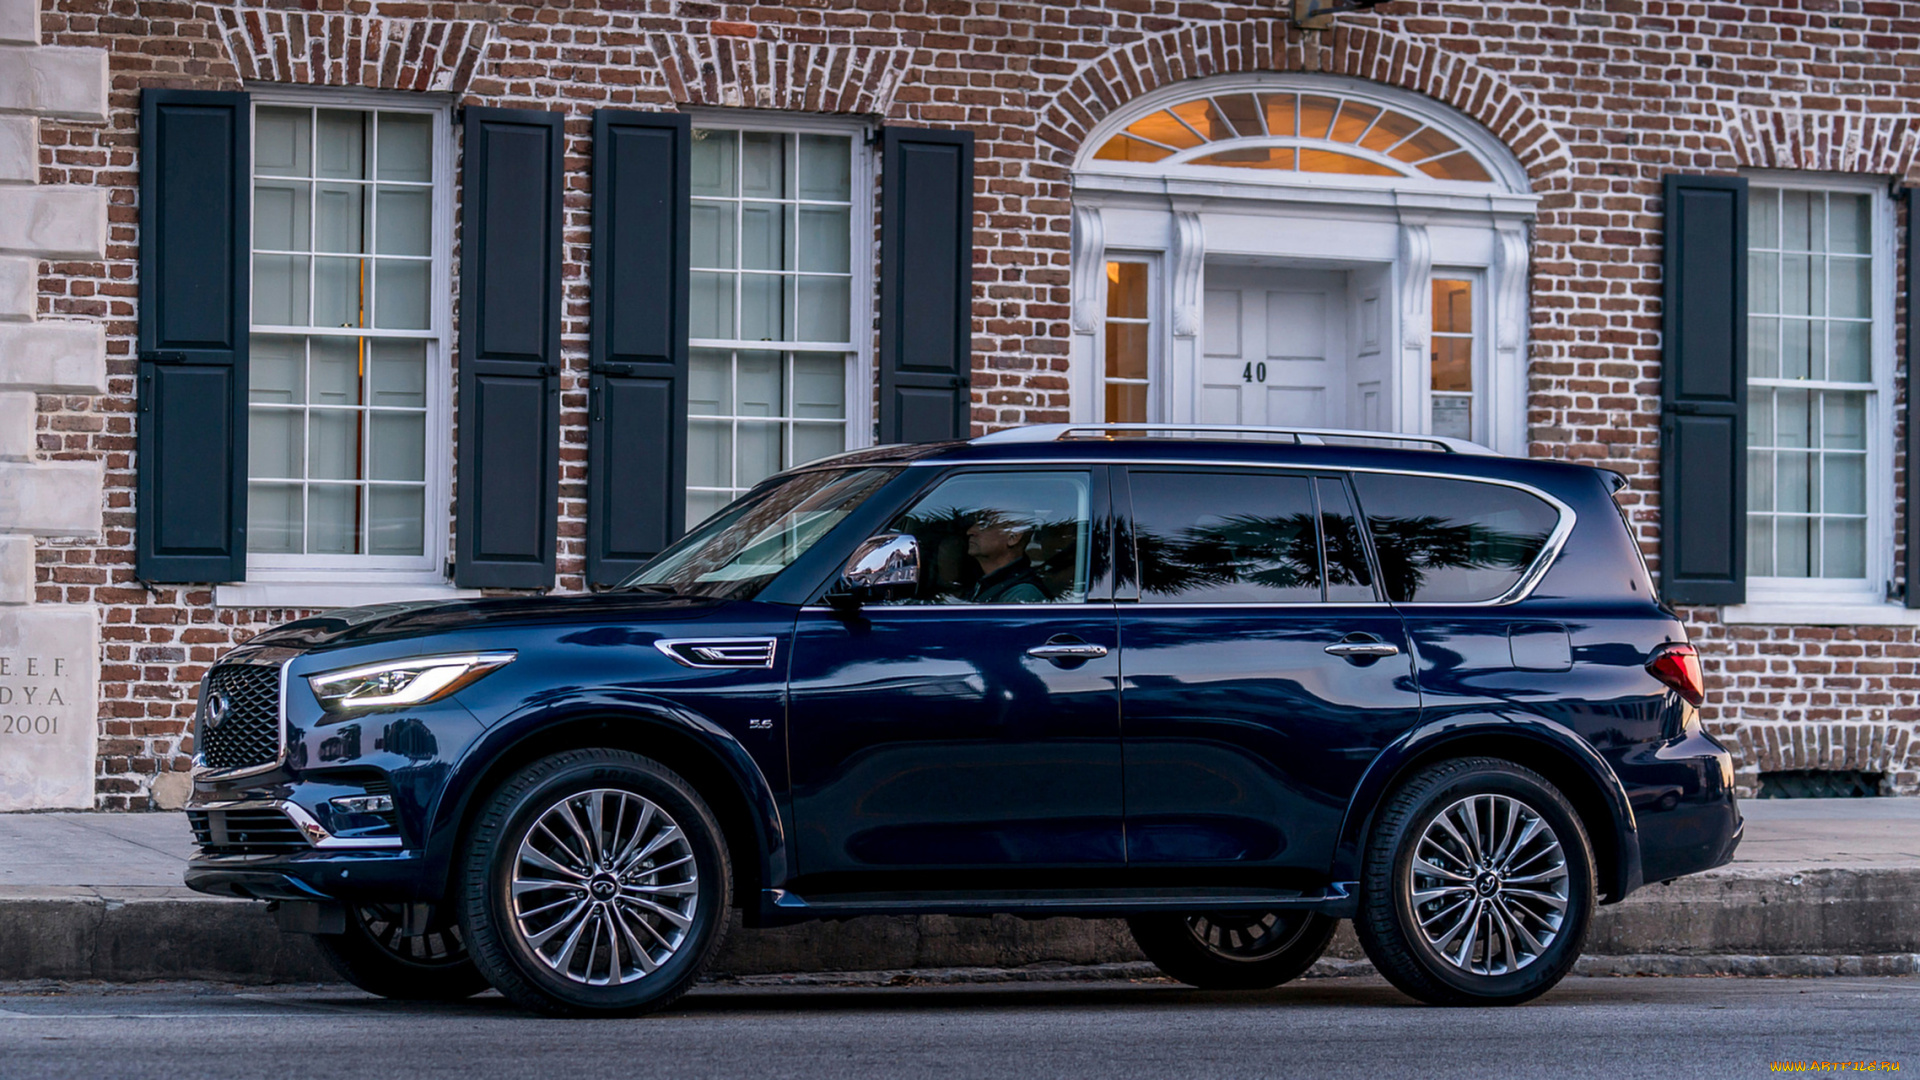 infiniti, qx80, 2018, автомобили, infiniti, 2018, blue, hermosa, color, qx80